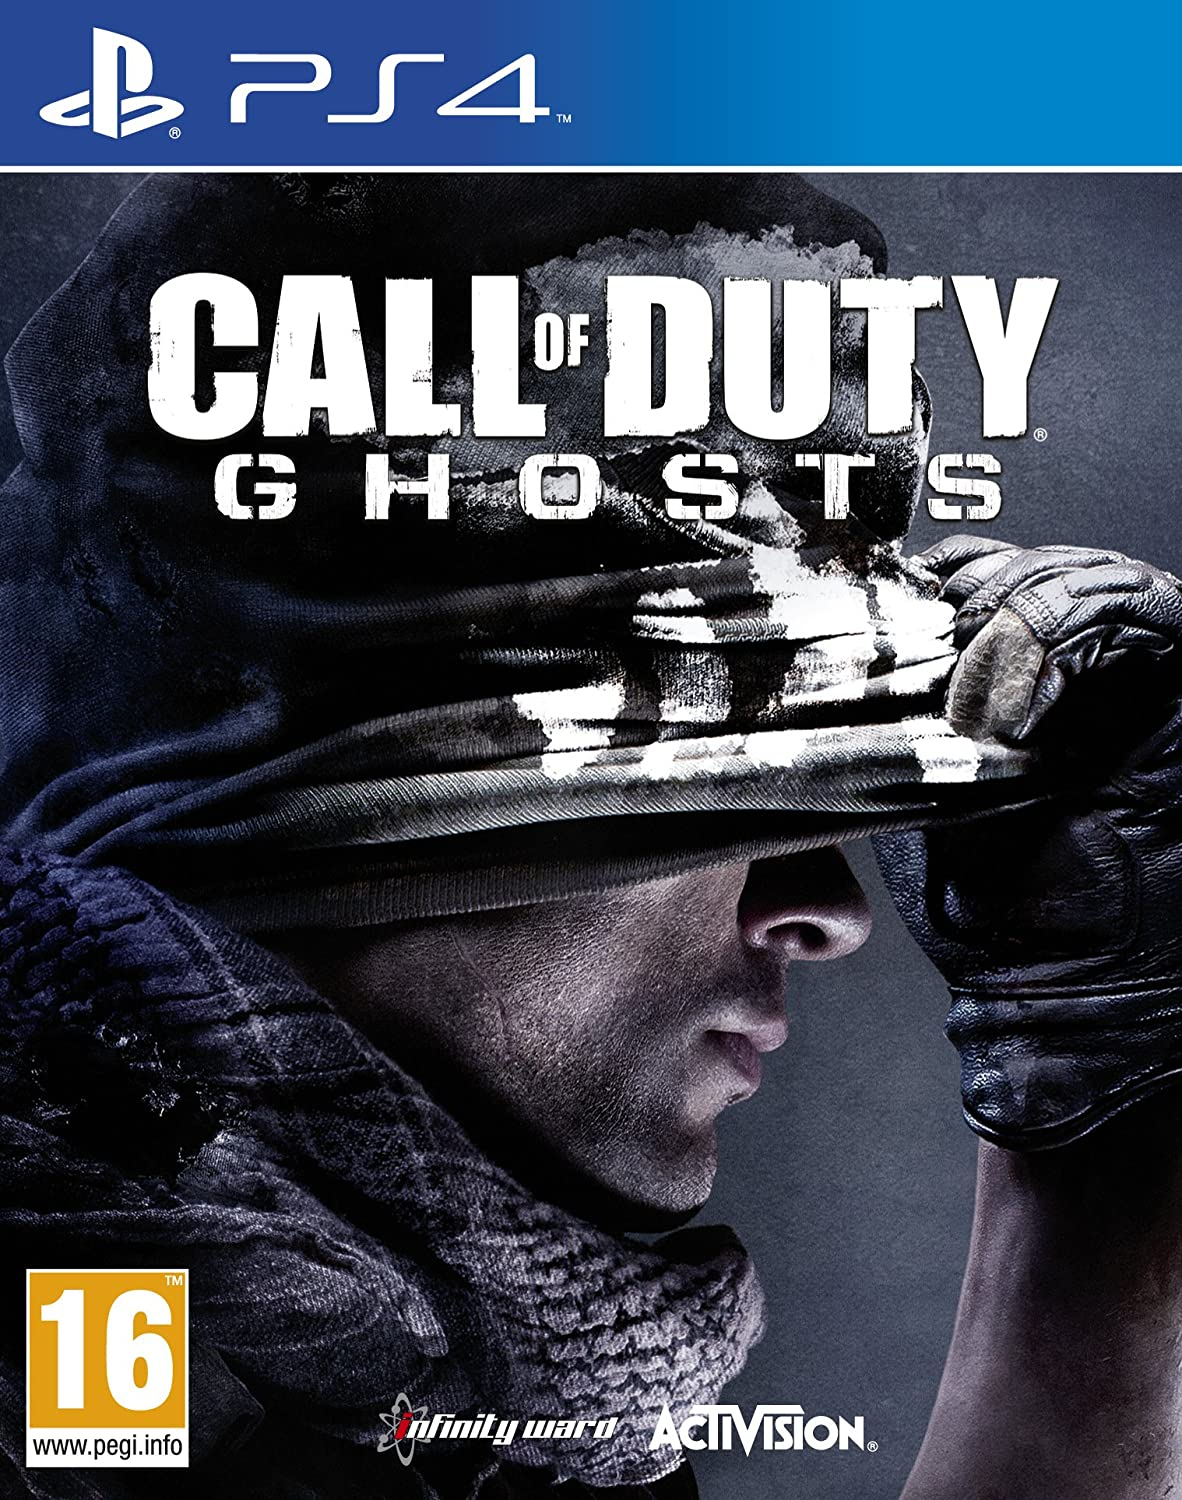 Amazon.com: Call of Duty: Ghosts (PS4) (UK): Video Games